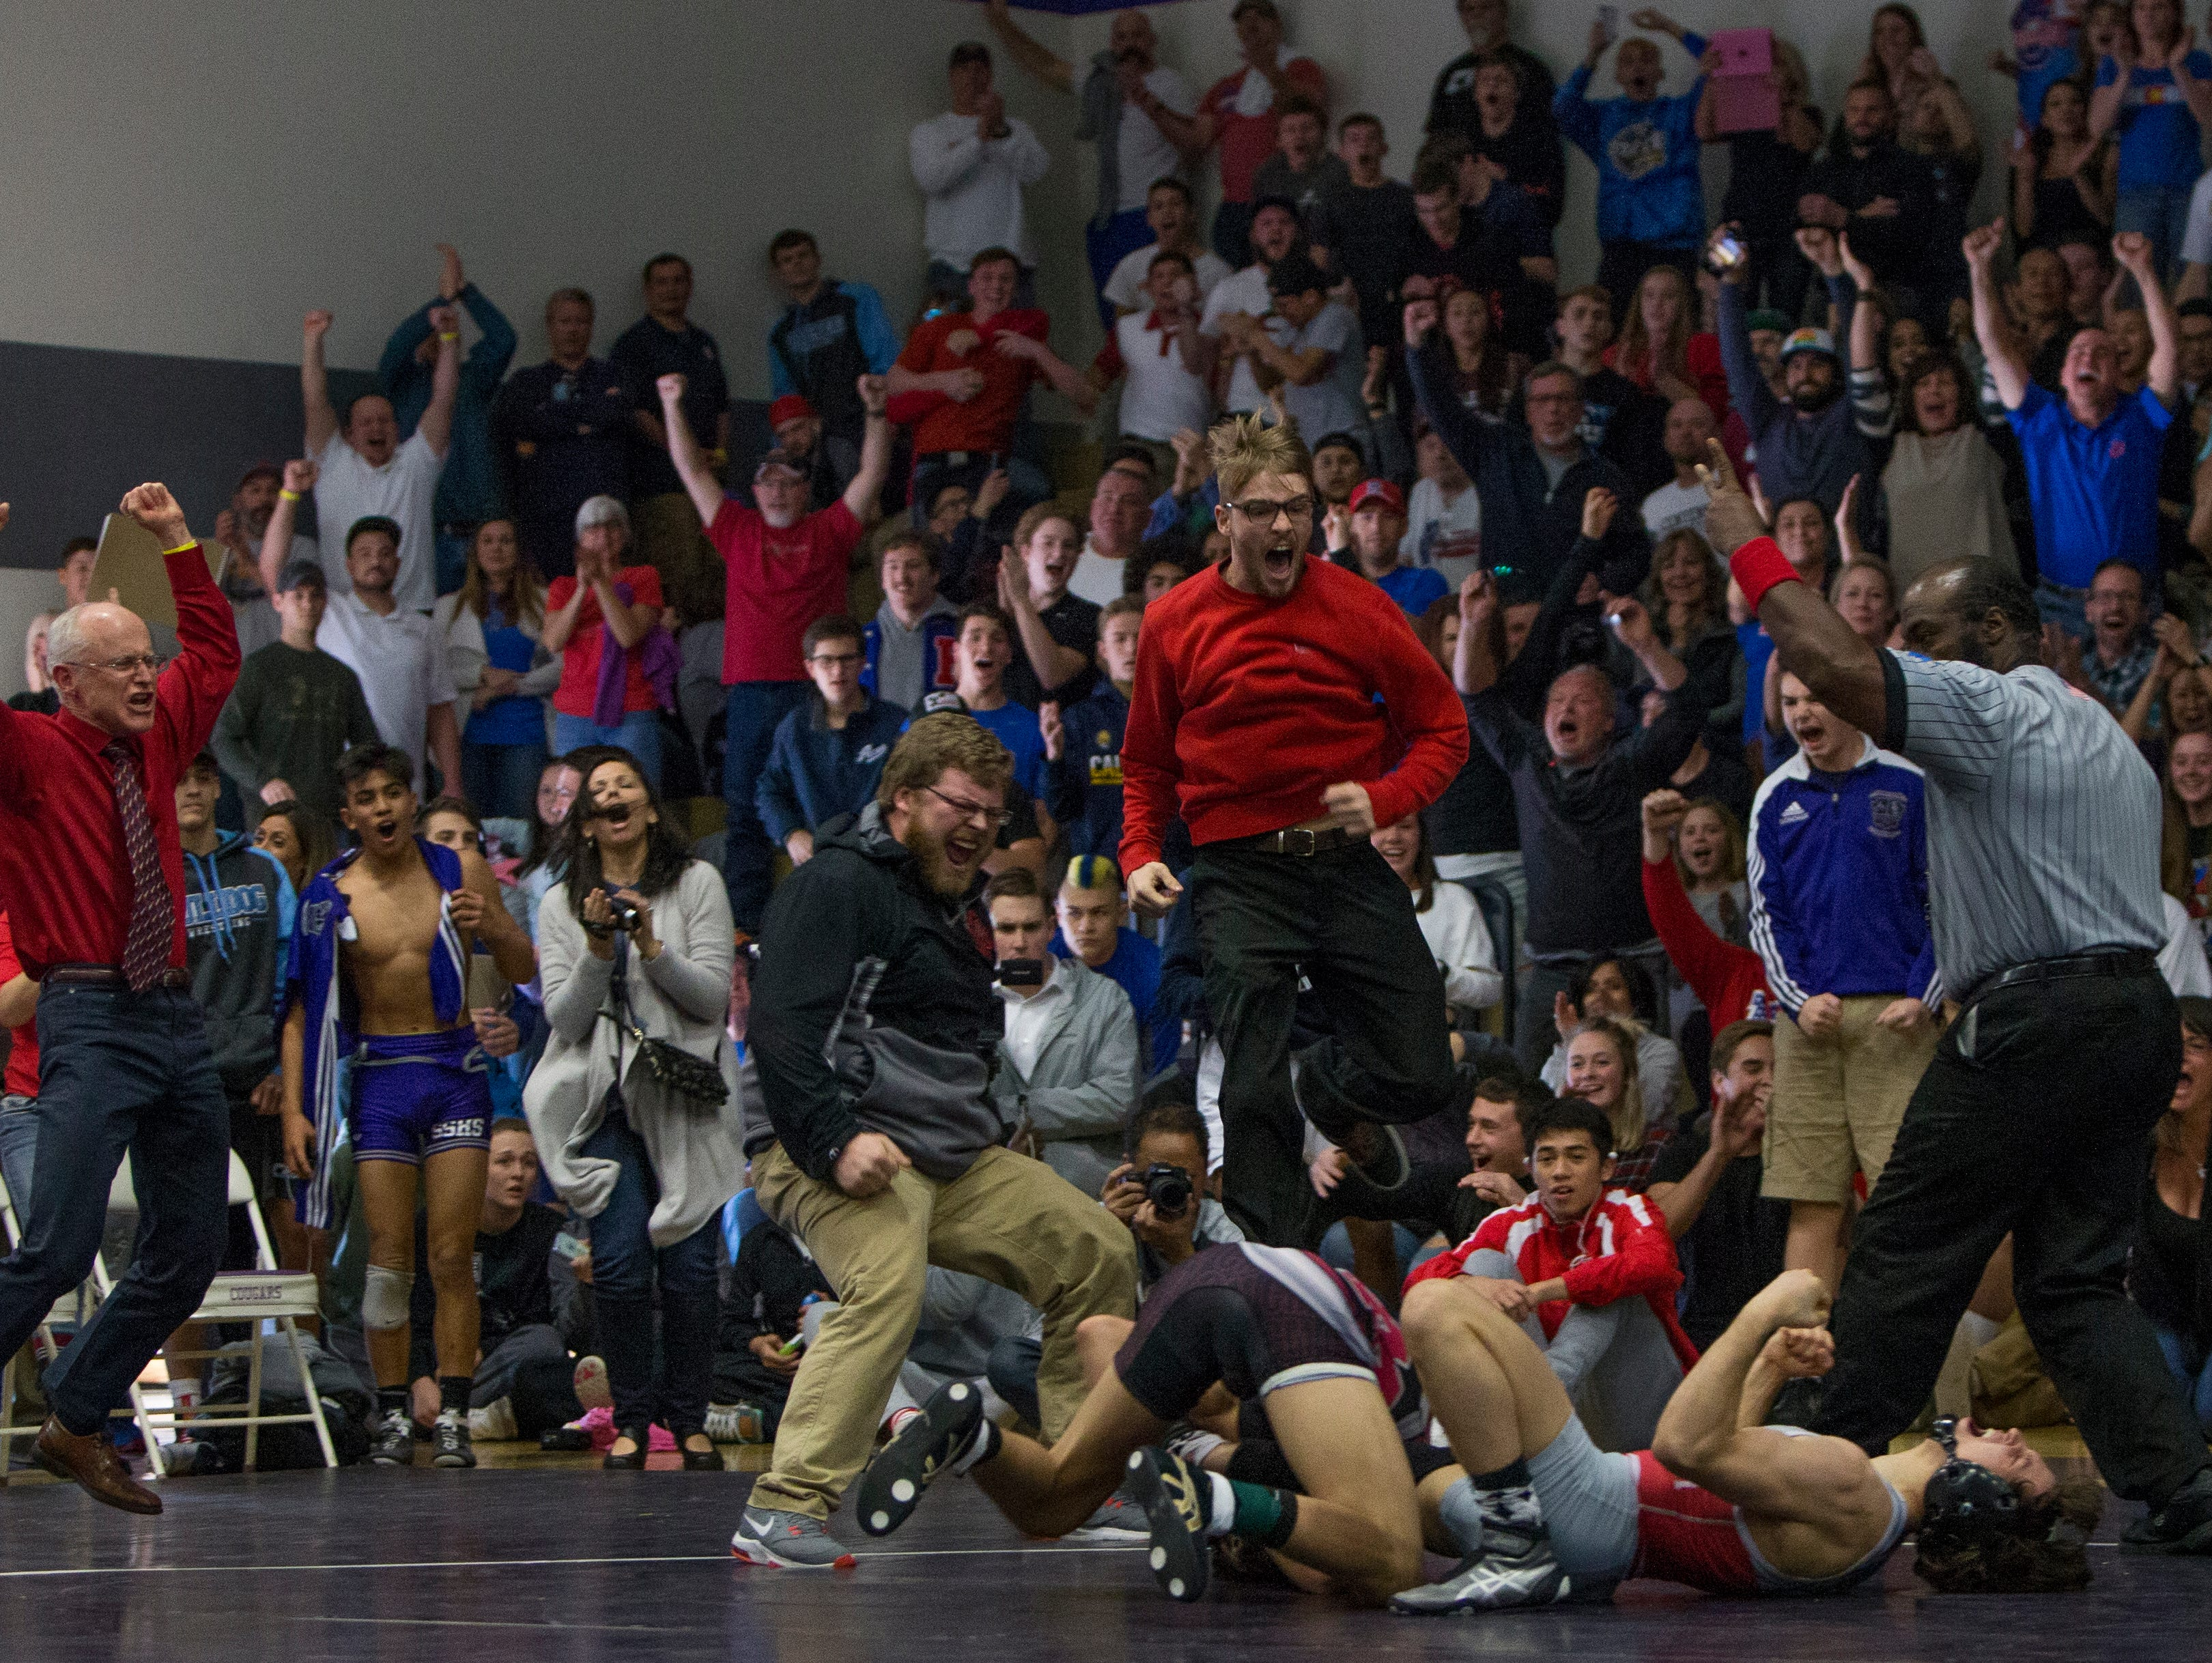 Wooster's Ian Timmins reacts laying on his back on the mat, as his coaches and fans celebrate, after defeating Cimarron's Daniel Rodriguez in the 126-pound division of the 4A Nevada State Wrestling Championships held on Saturday at Spanish Springs. Timmins won the State Championship.